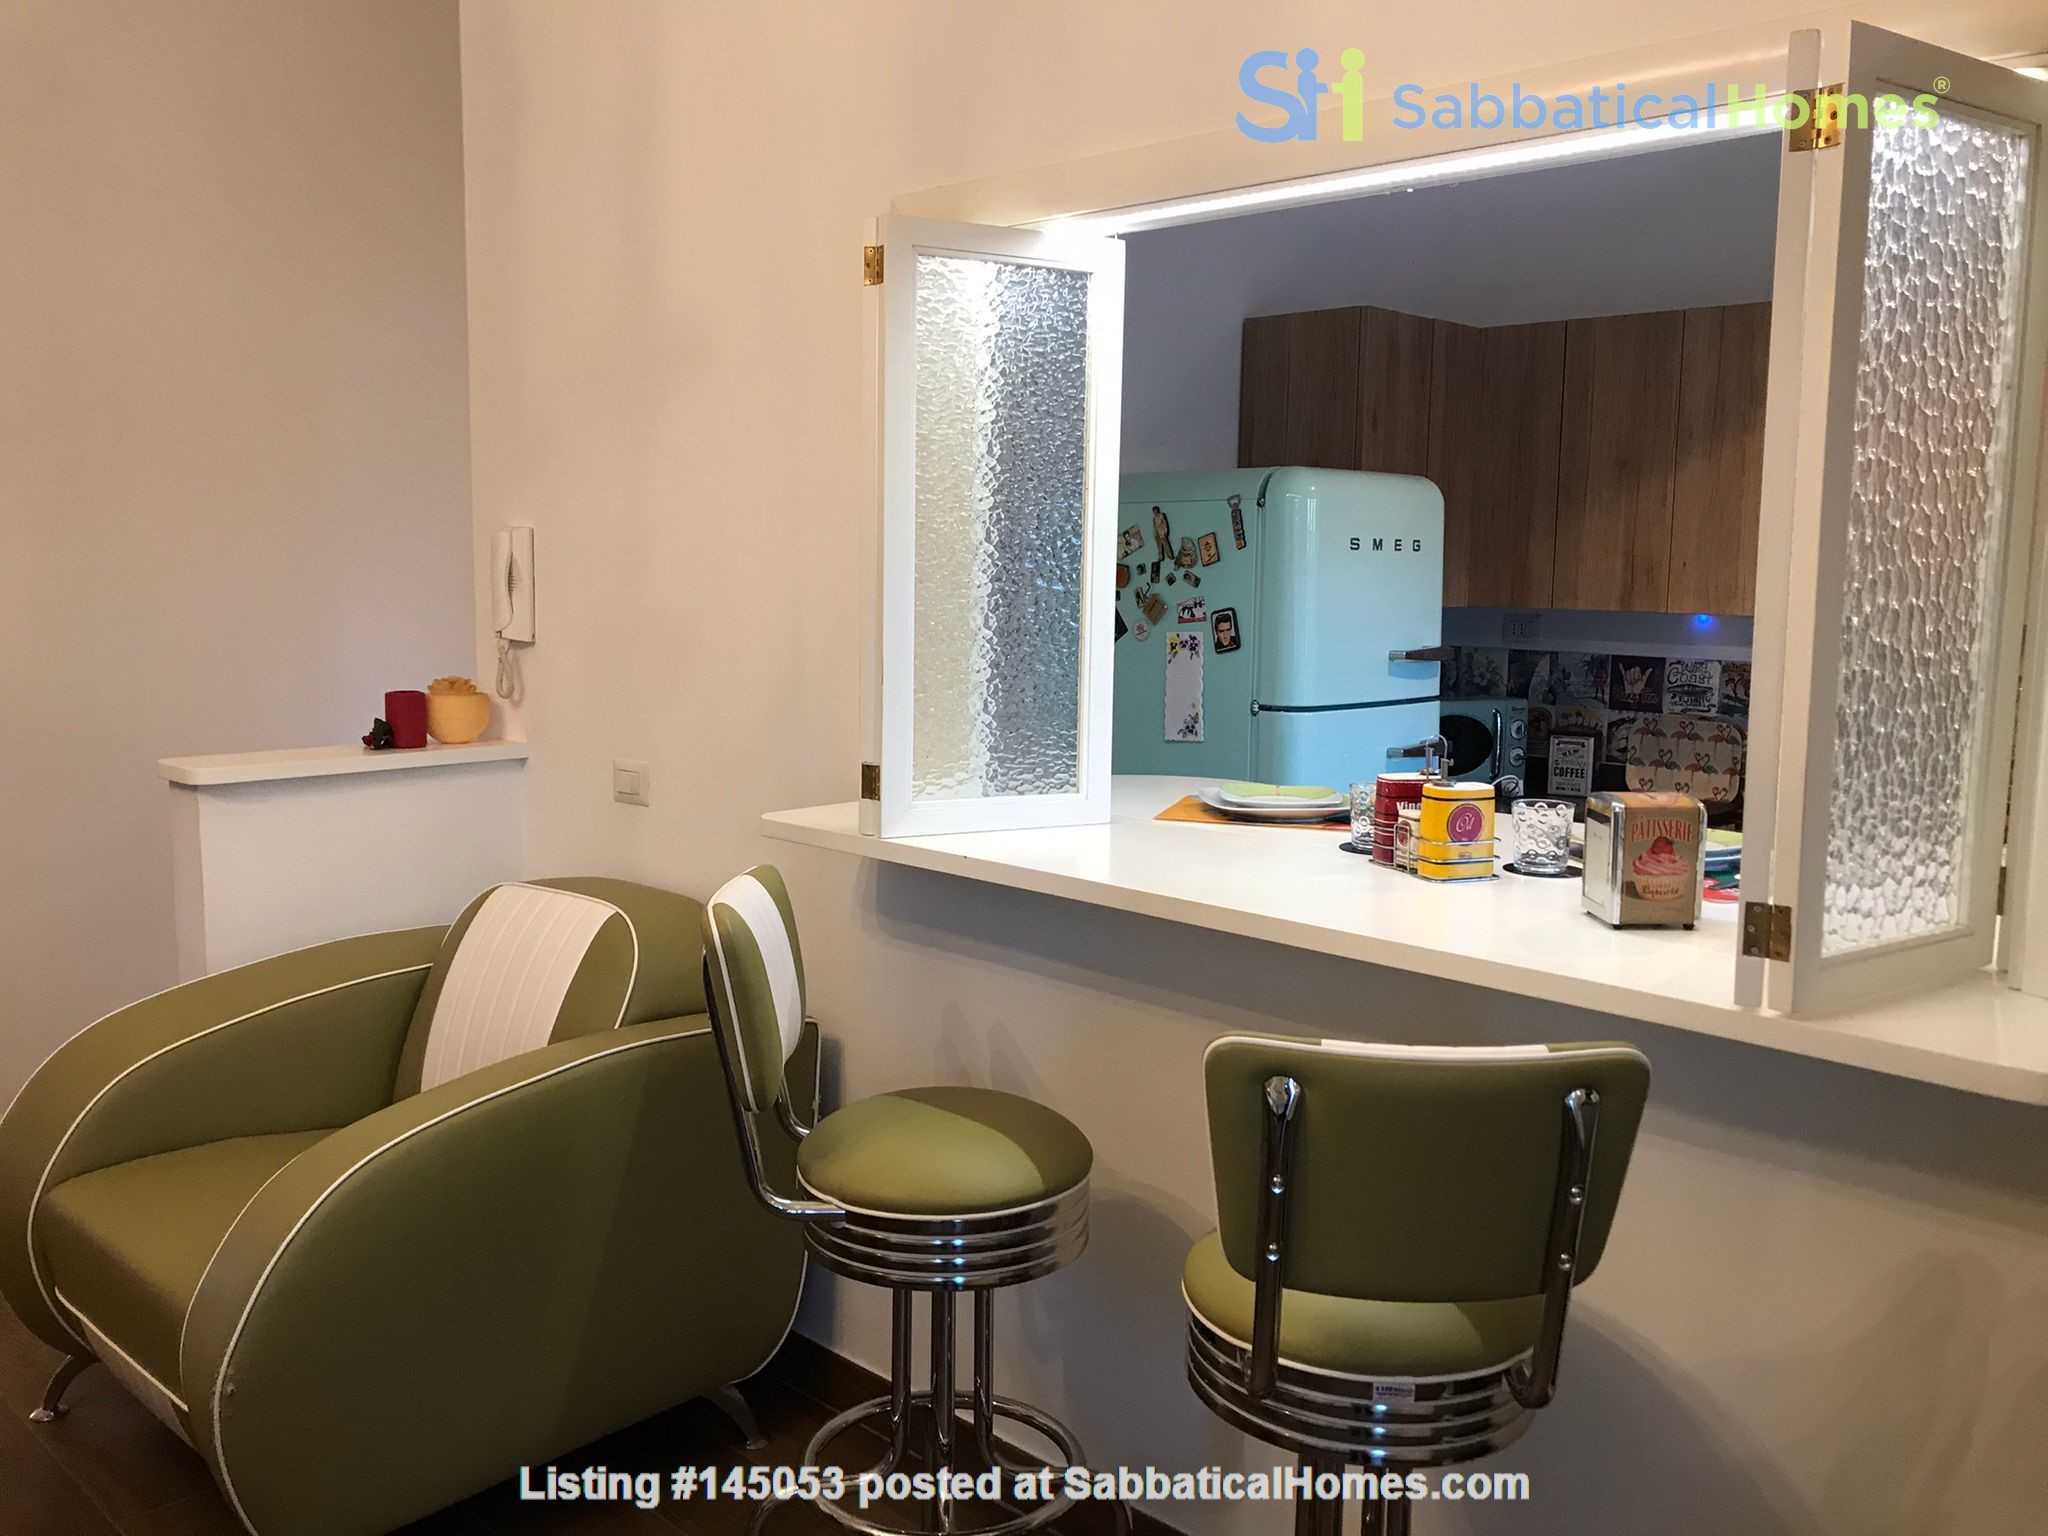 University Sacro Cuore - Brightly apartment with large terrace. Home Rental in Roma, Lazio, Italy 0